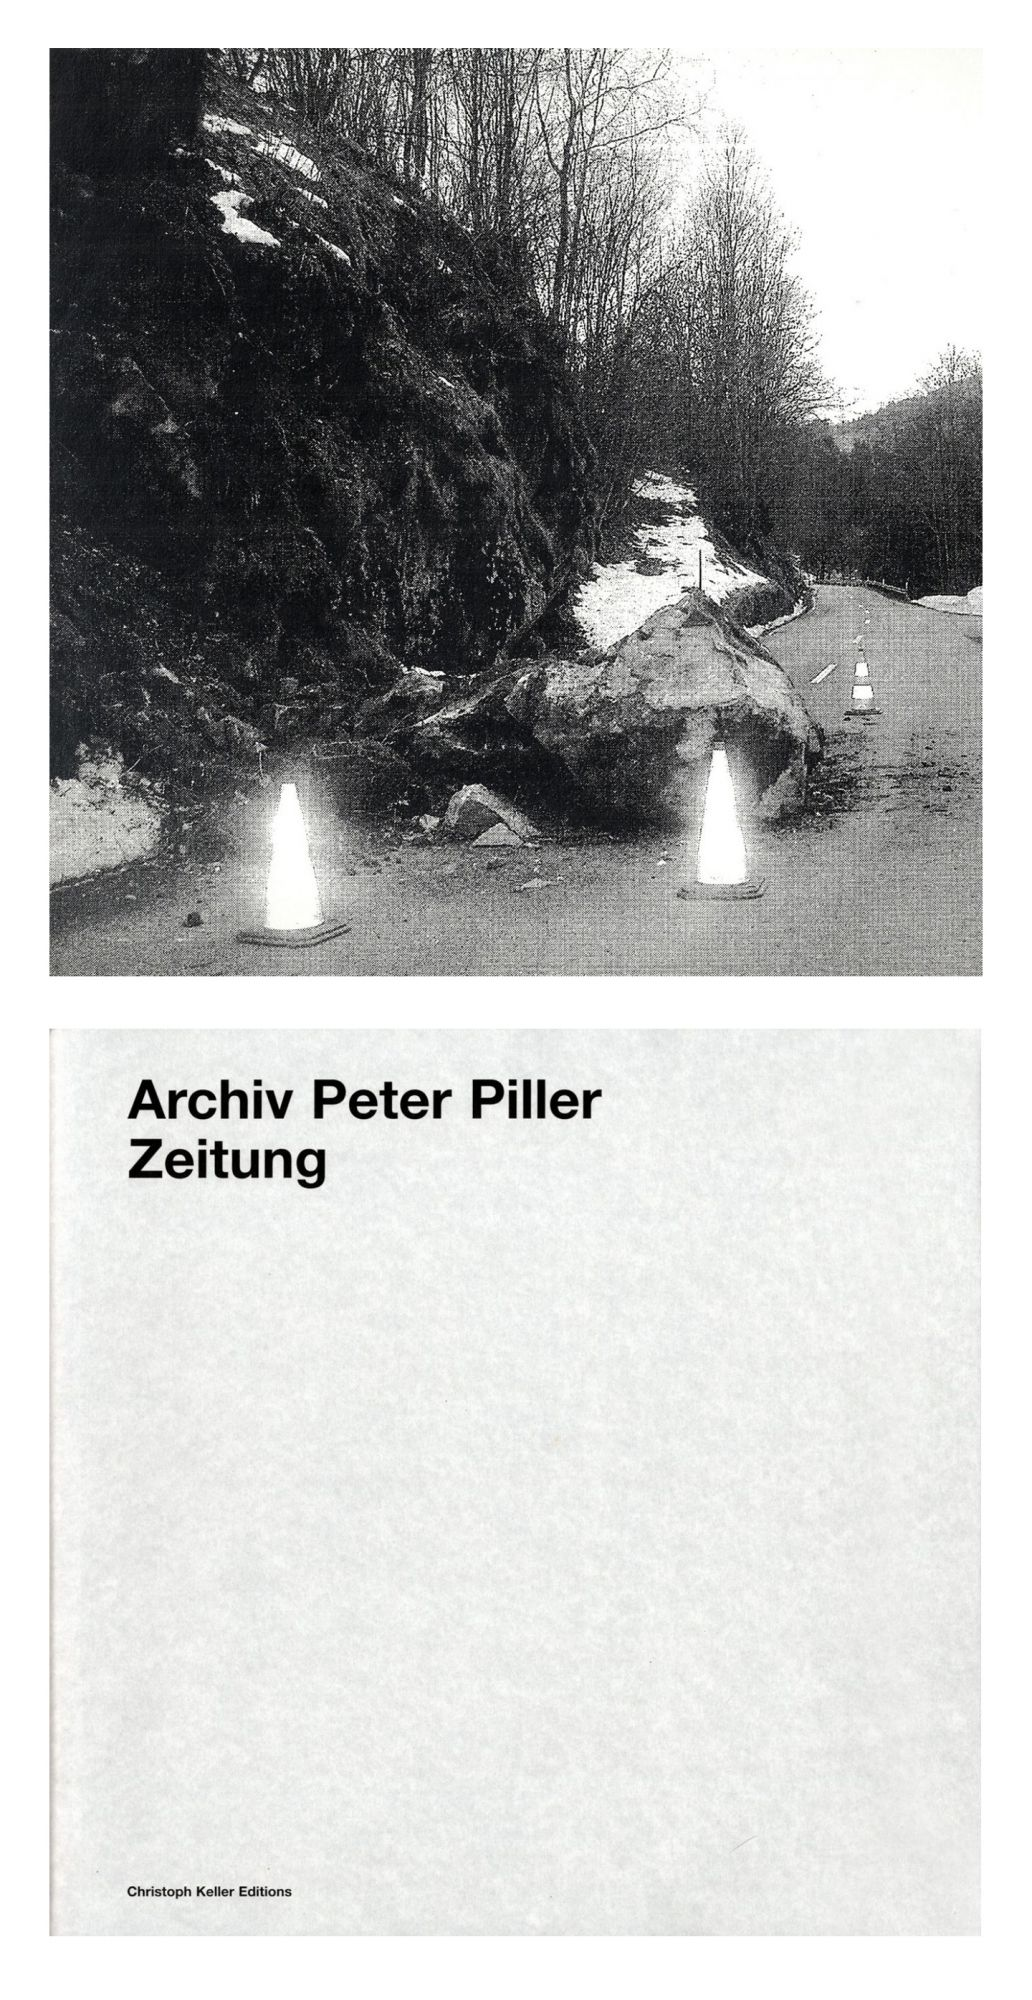 Archiv Peter Piller: Zeitung, Limited Edition (with Archival Pigment Print)